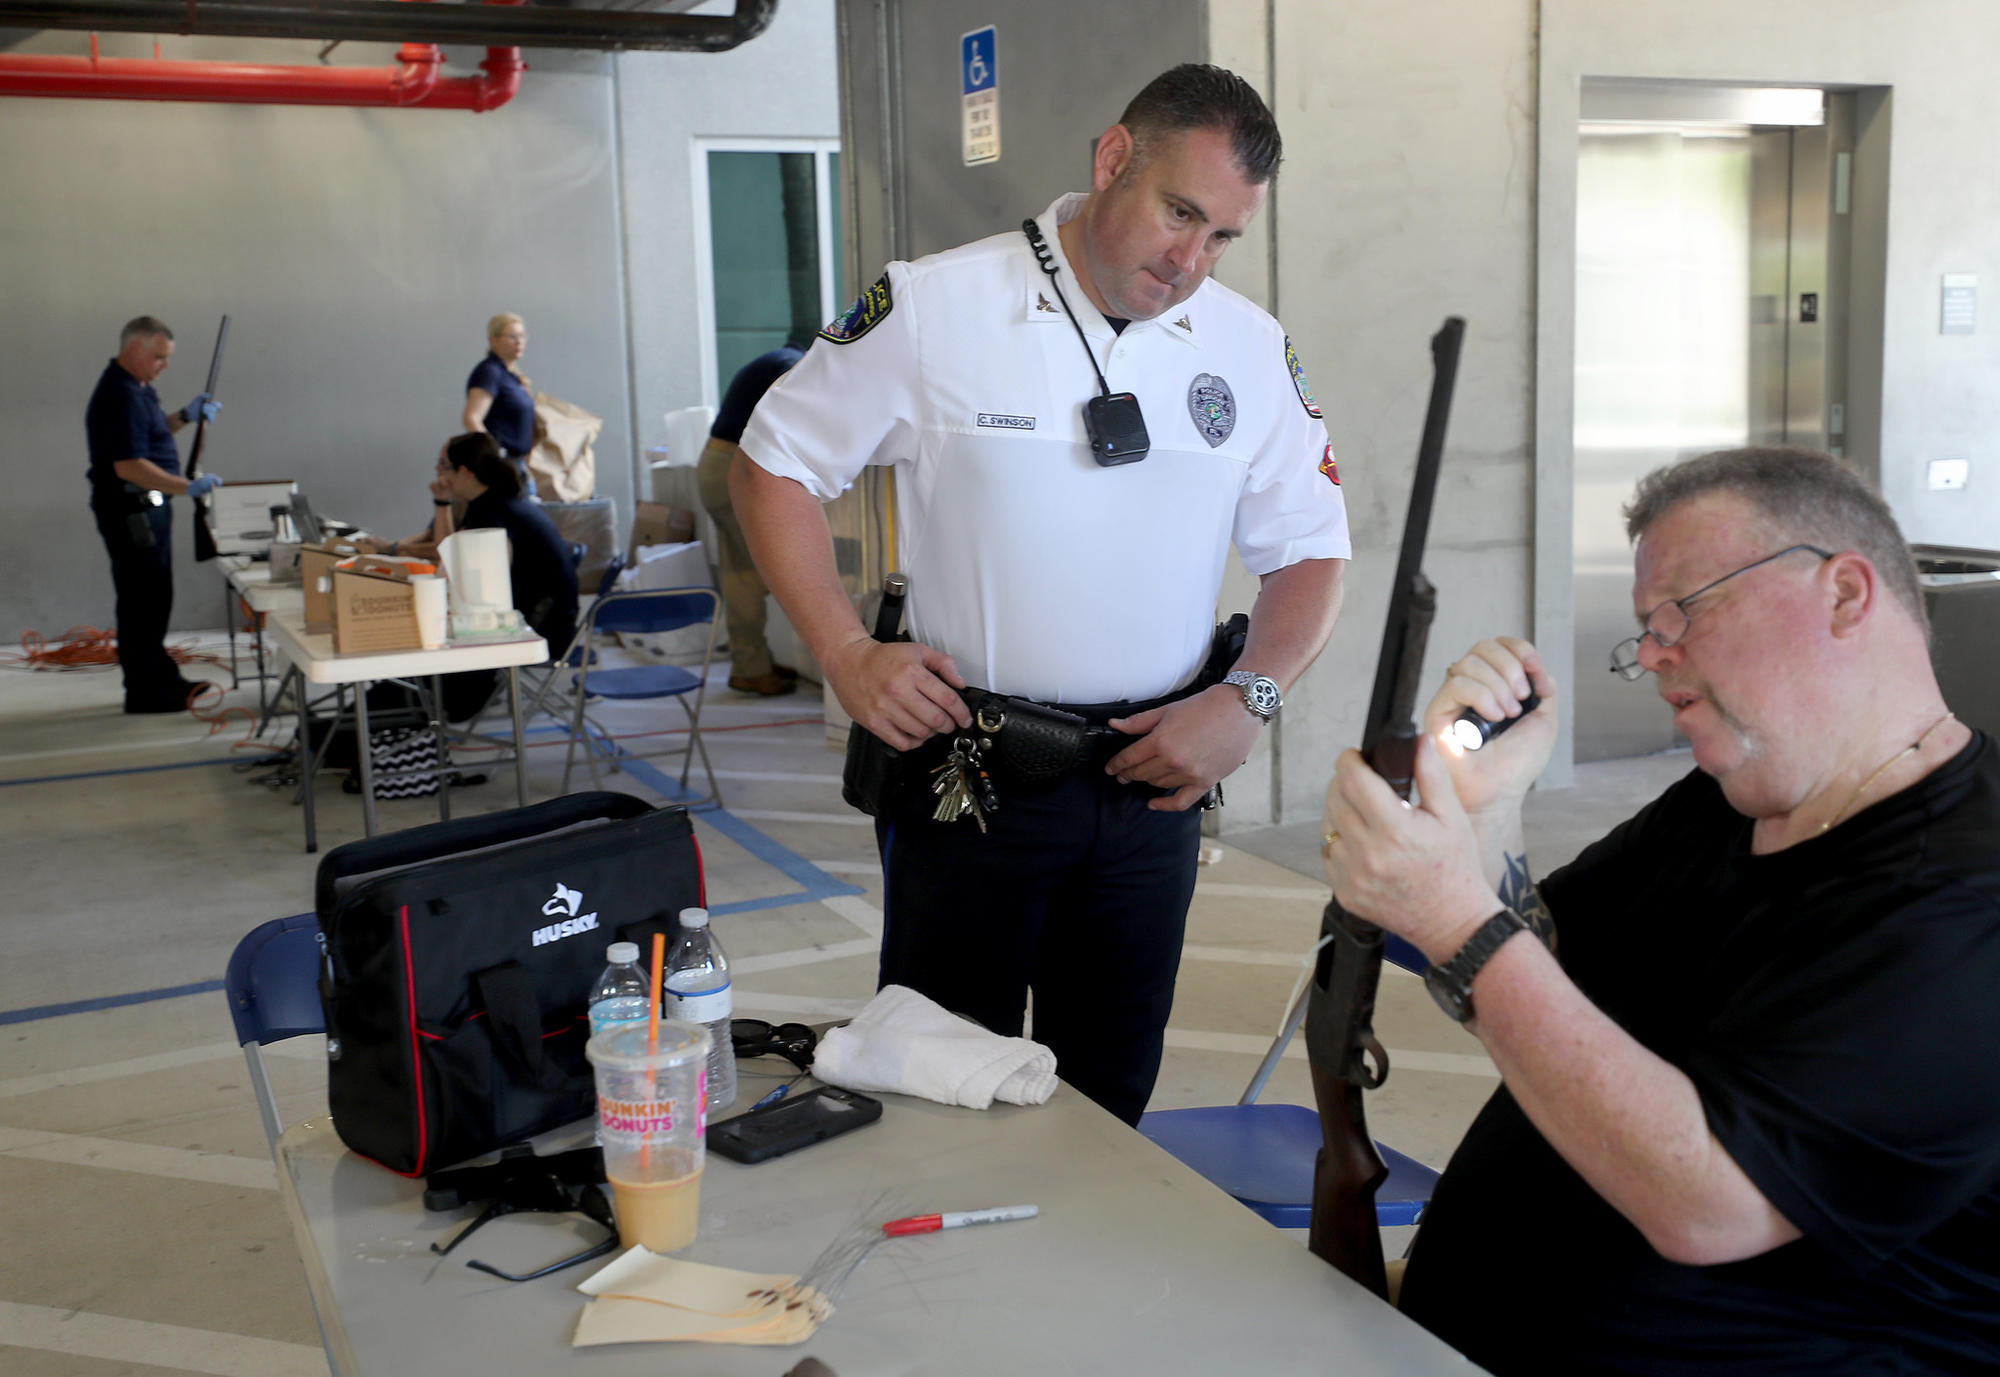 Fewer guns on the street: Weapons turned in during event sponsored by MSD parents